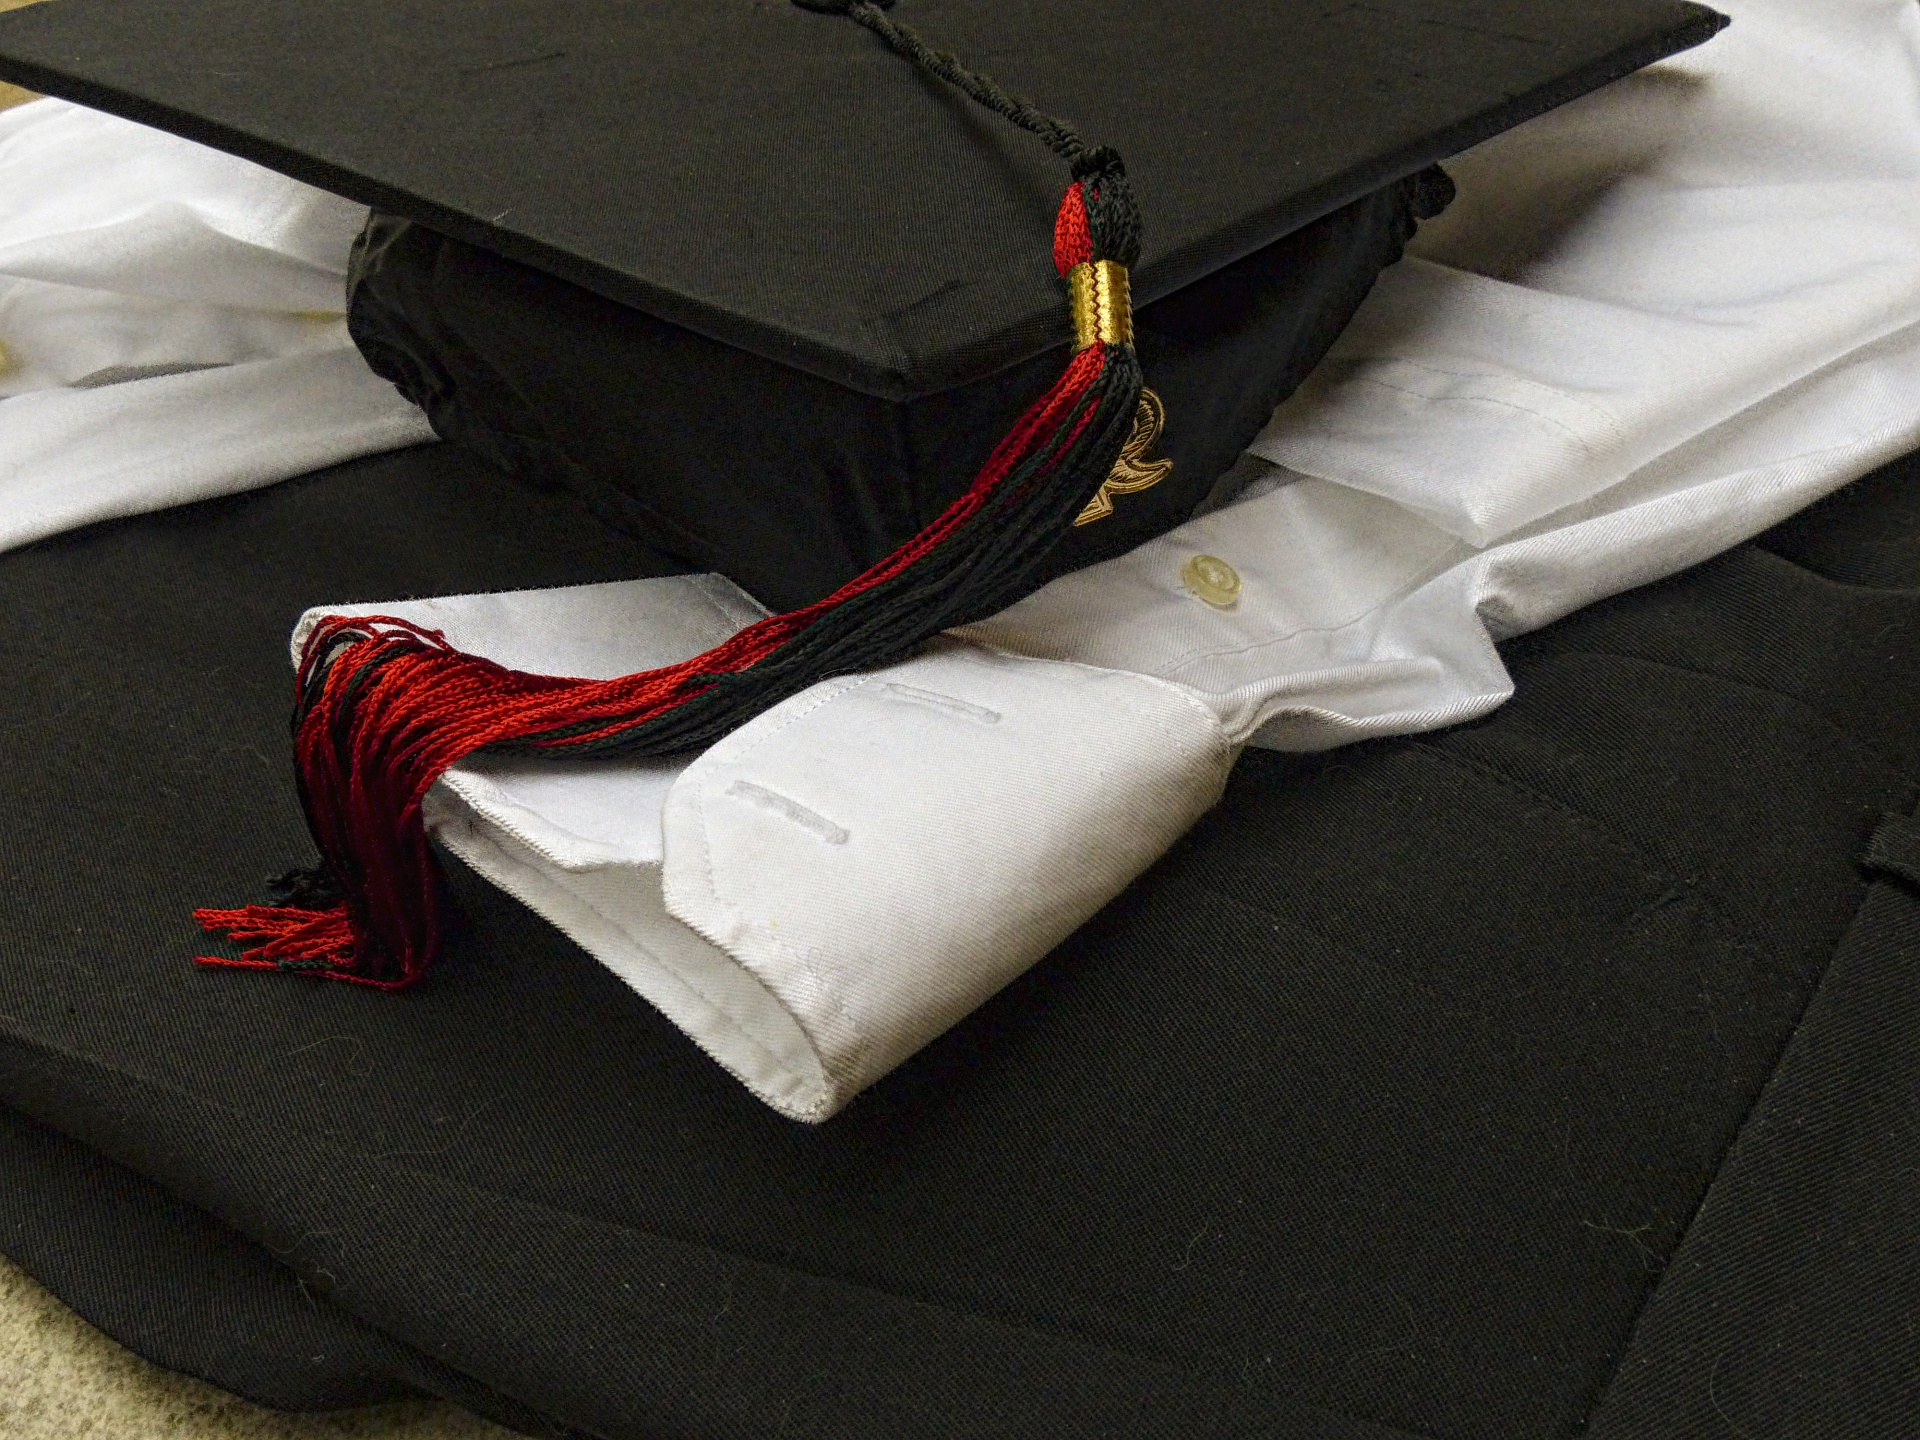 Students participate in second graduation for classmate in coma at East Juniata High School